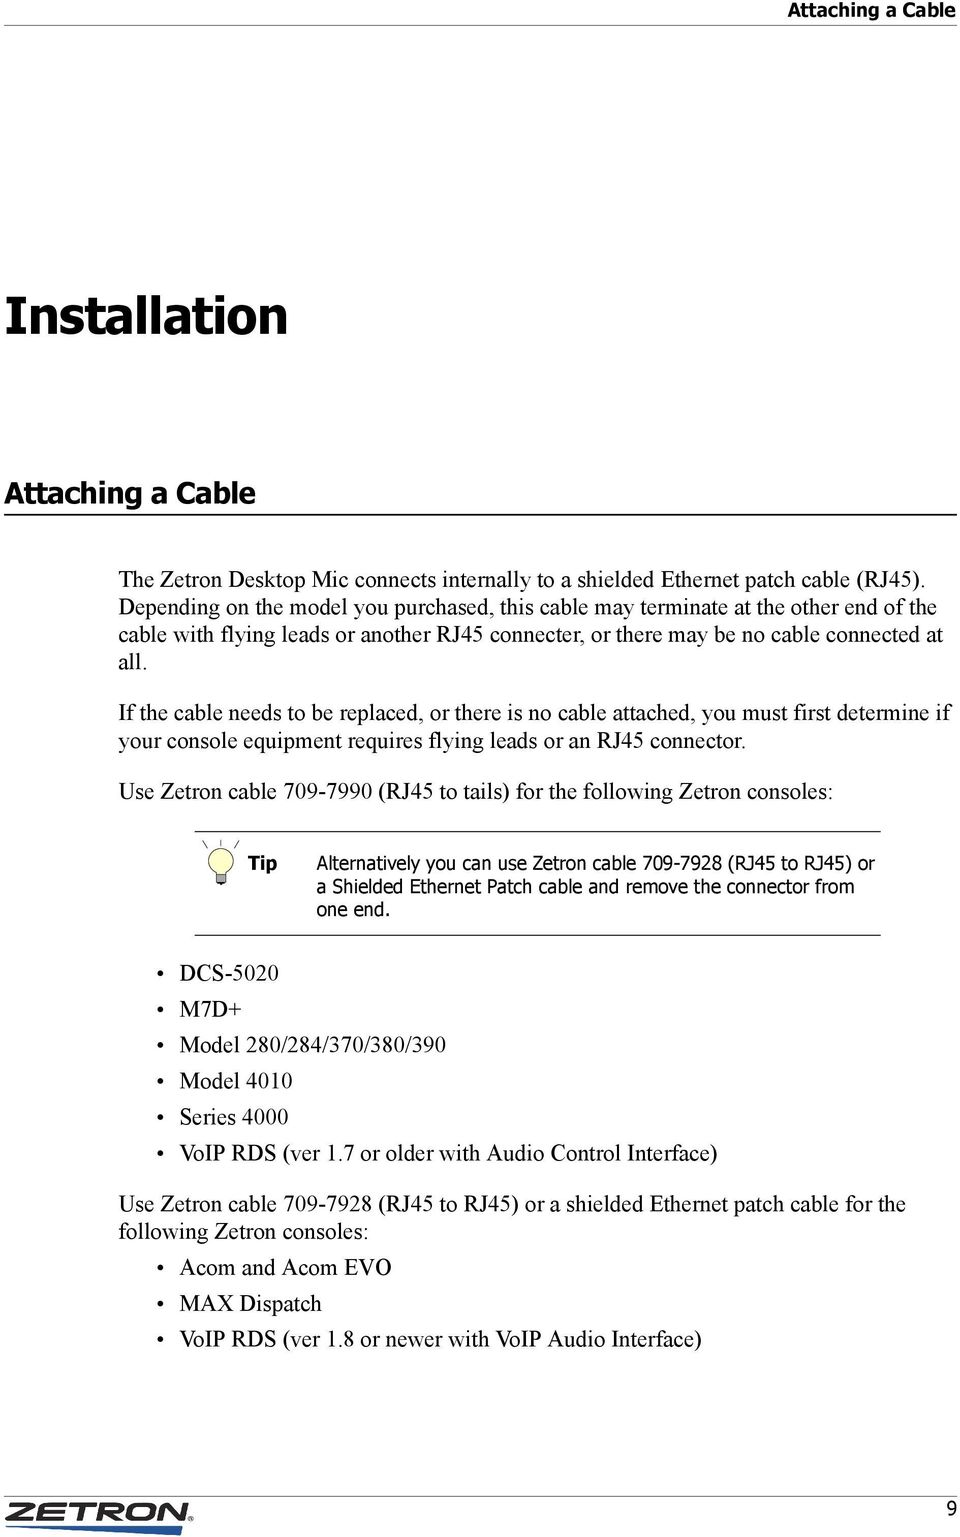 If the cable needs to be replaced, or there is no cable attached, you